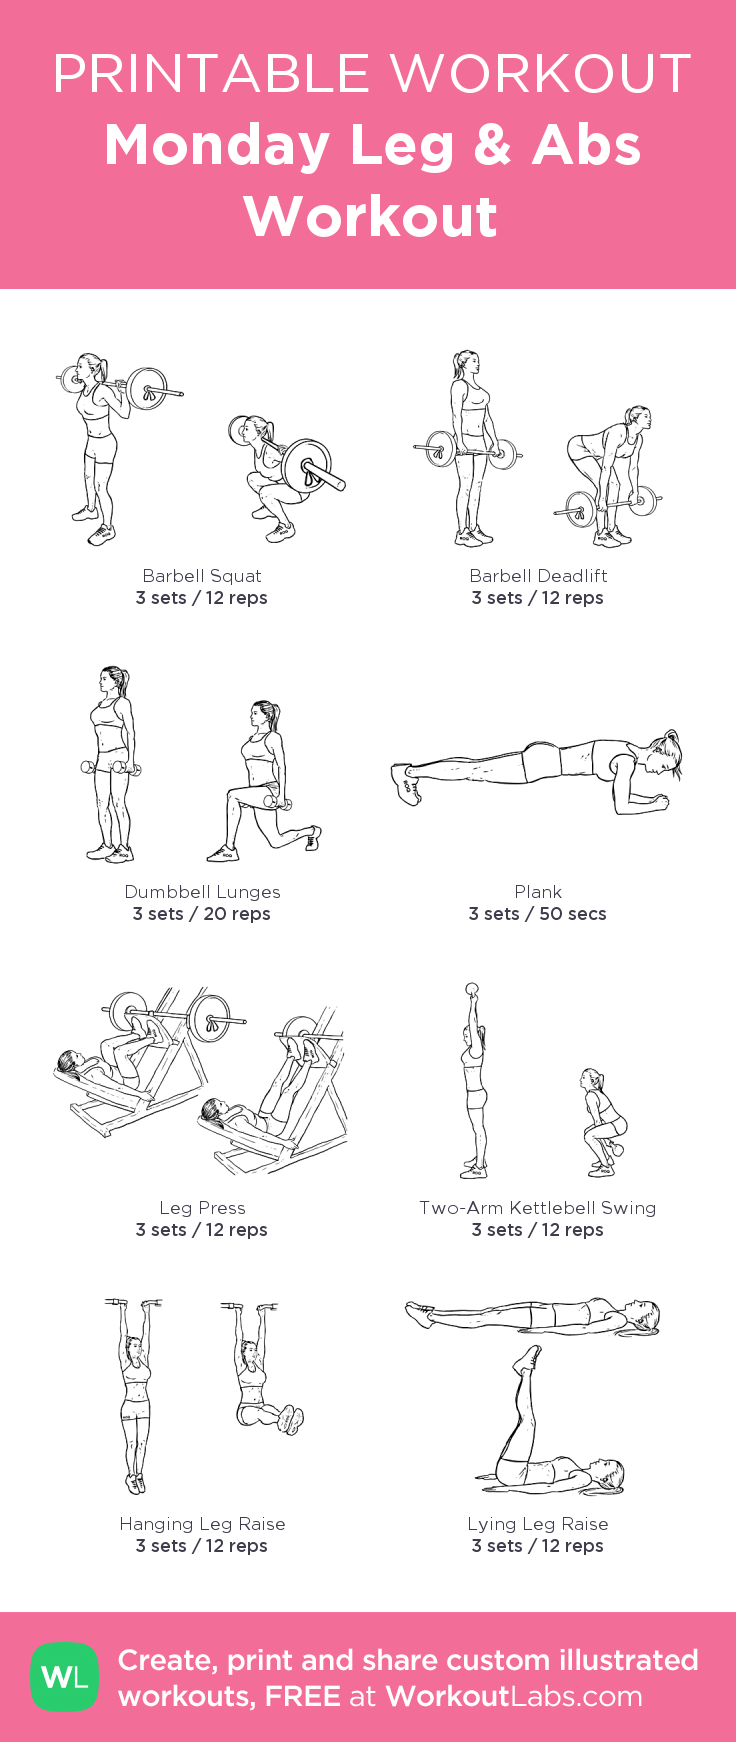 photograph relating to Printable Ab Workout referred to as Monday Leg Stomach muscles Exercise session: my tailor made printable training through